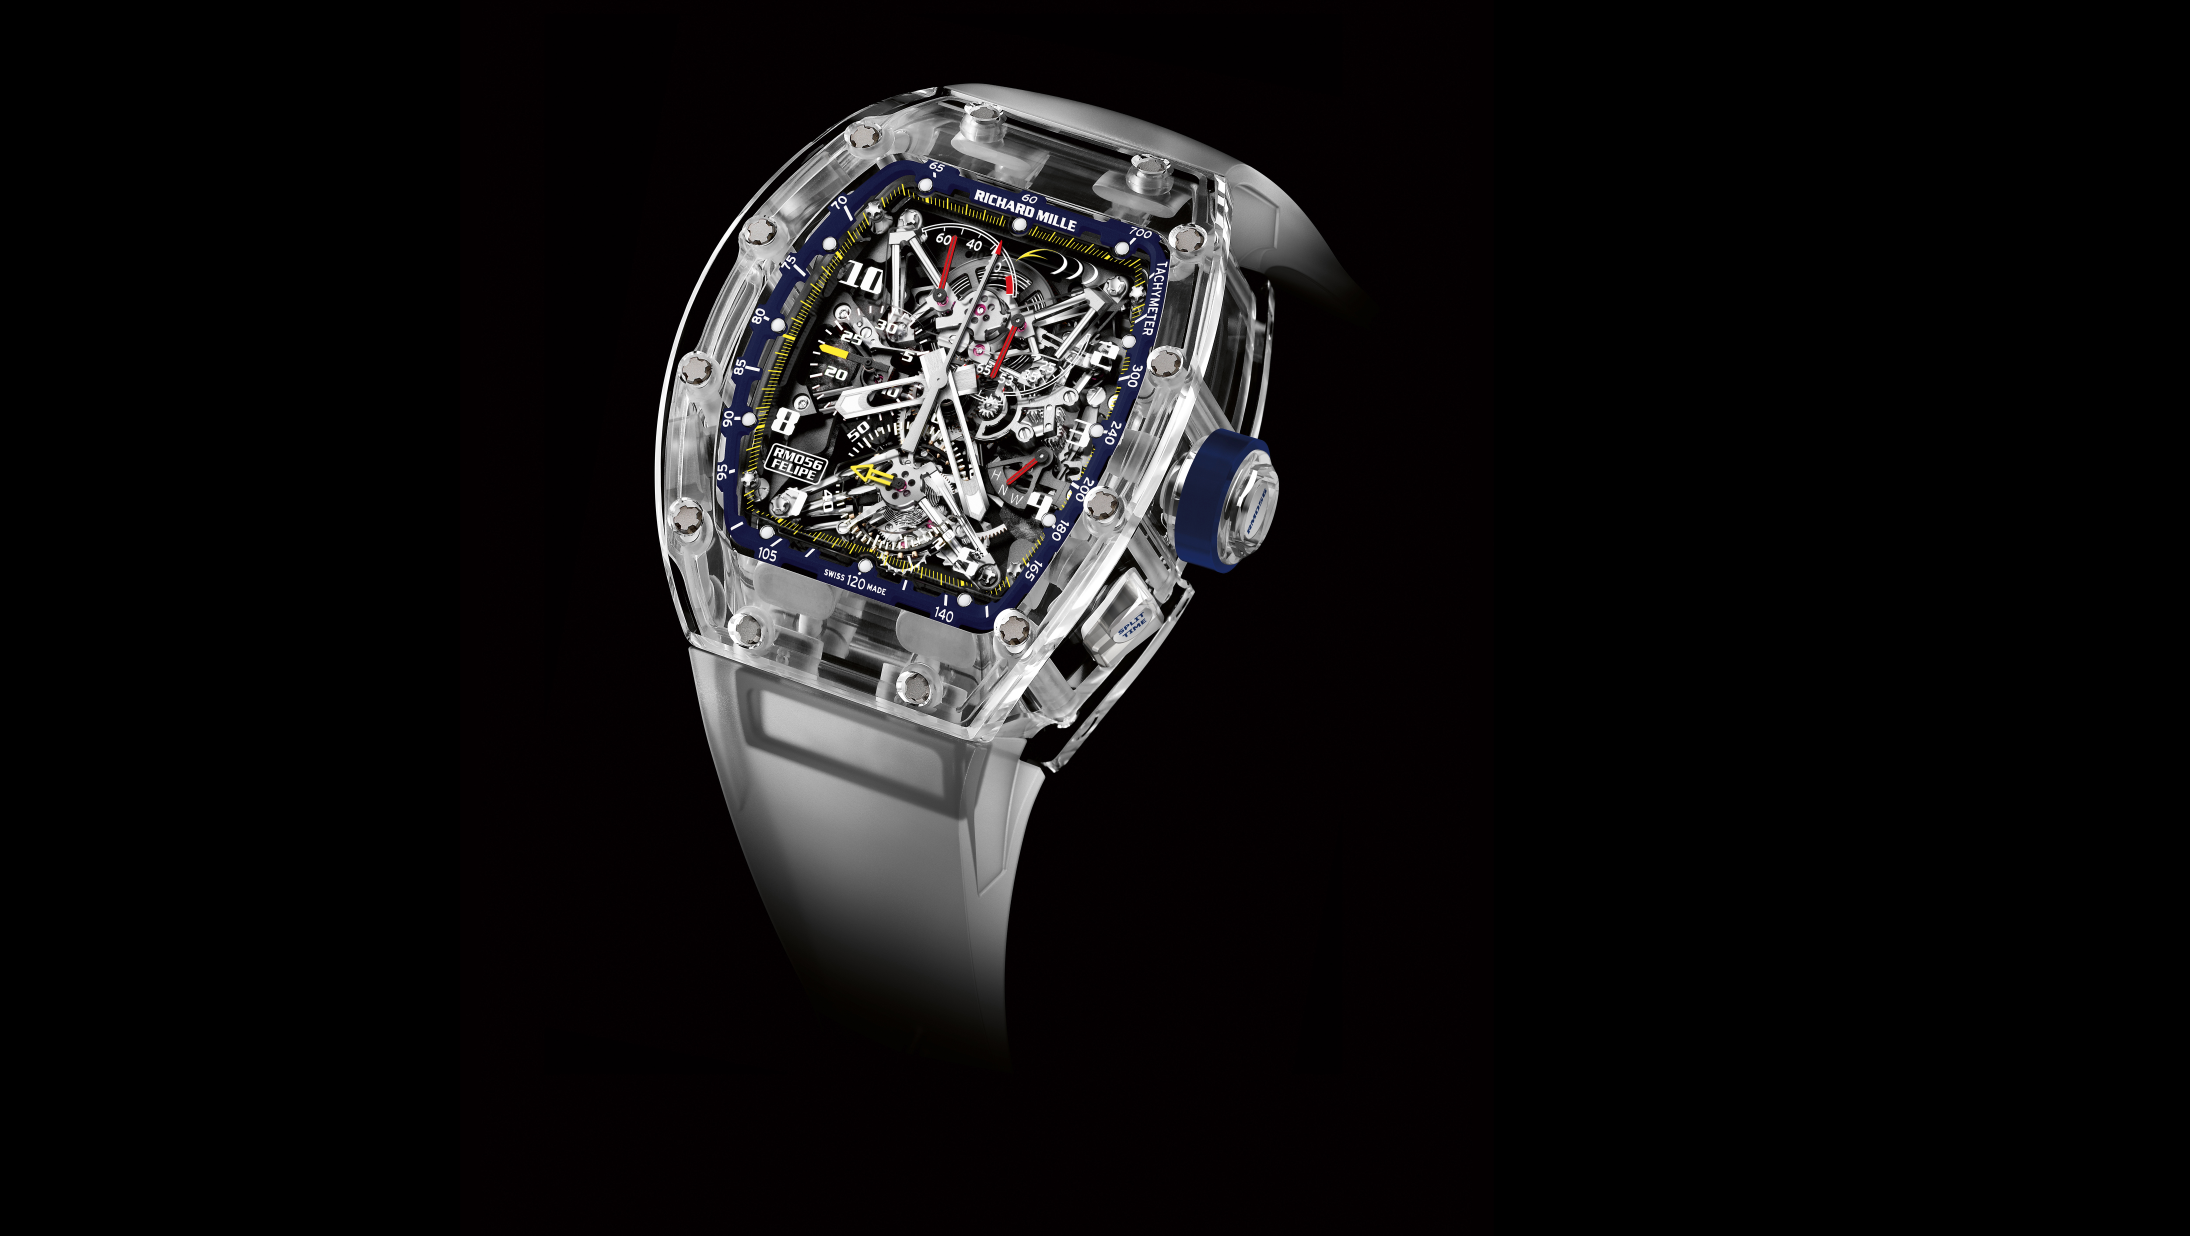 Richard Mille Felipe Massa Limited Edition RM 56 10 Anniversary Watch Front